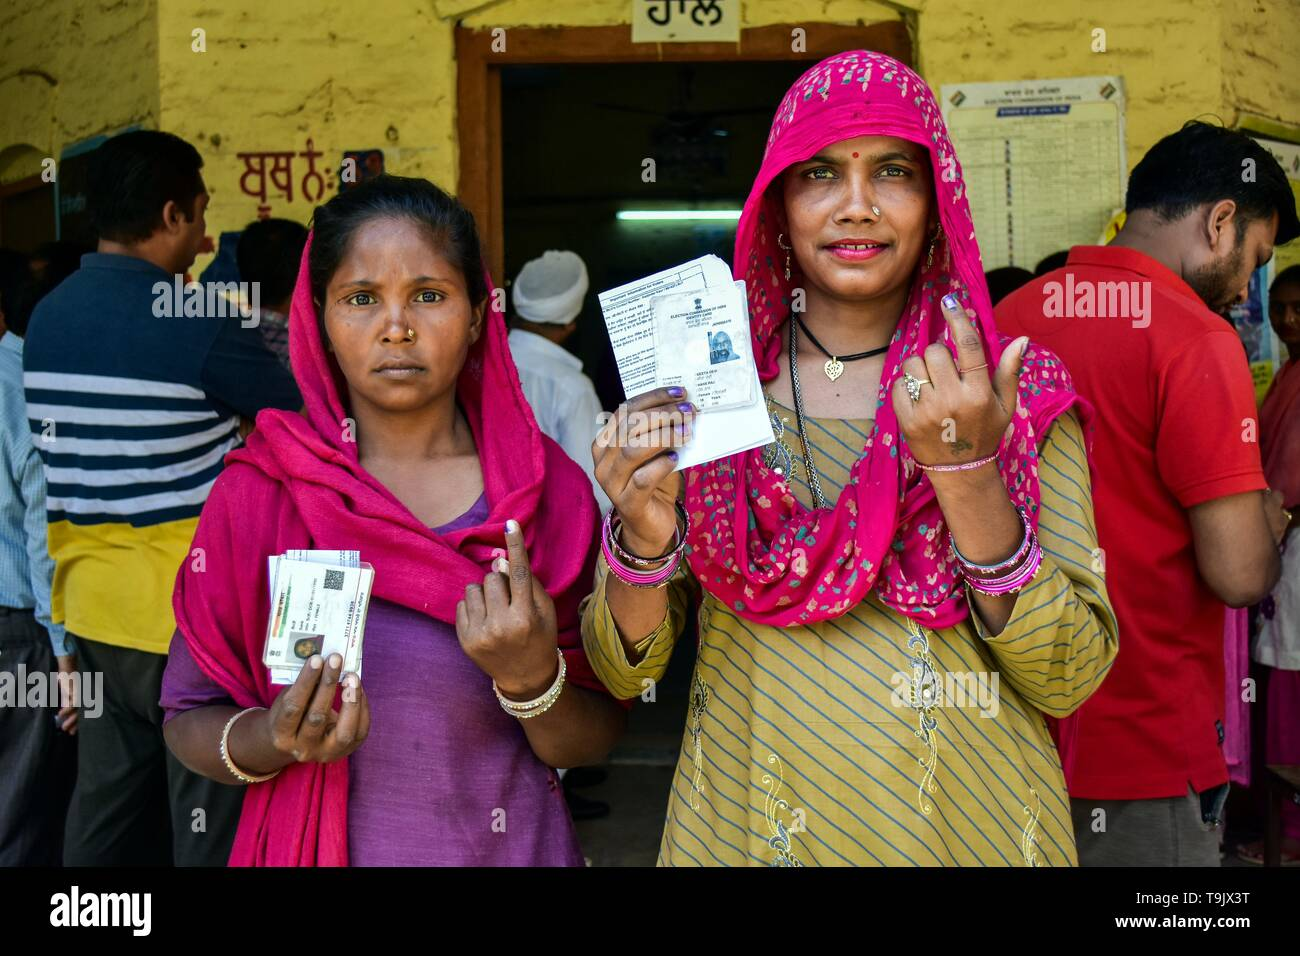 Indian voters seen showing their identity card and ink finger after casting her vote at a polling station during the final phase of India's general election in Patiala district of Punjab. Voting has begun for the final phase of Lok Sabha elections in Punjab, Bihar, West Bengal, Madhya Pradesh, Uttar Pradesh, Himachal Pradesh, Jharkhand and Chandigarh. Over 10.01 lakh voters will decide the fate of 918 candidates. The counting of votes will take place on May 23, officials said. - Stock Image